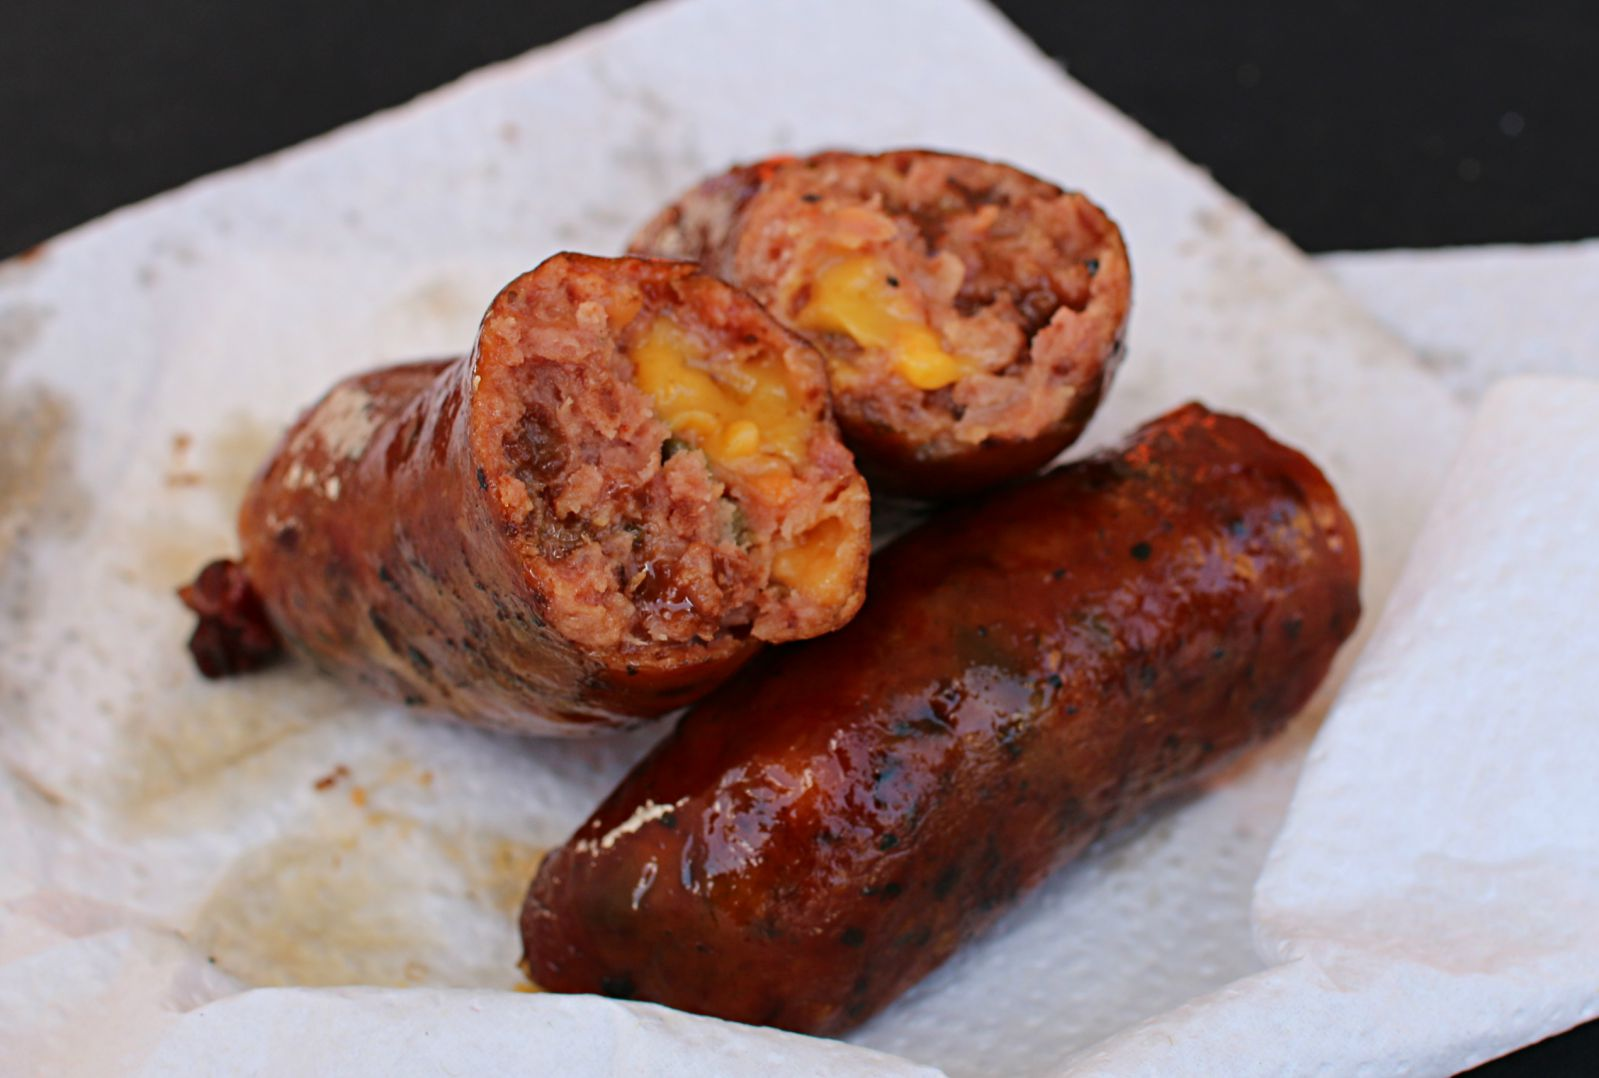 Hays Co. jalapeno, cheese, and chocolate sausage at Texas Monthly BBQ Fest 2016